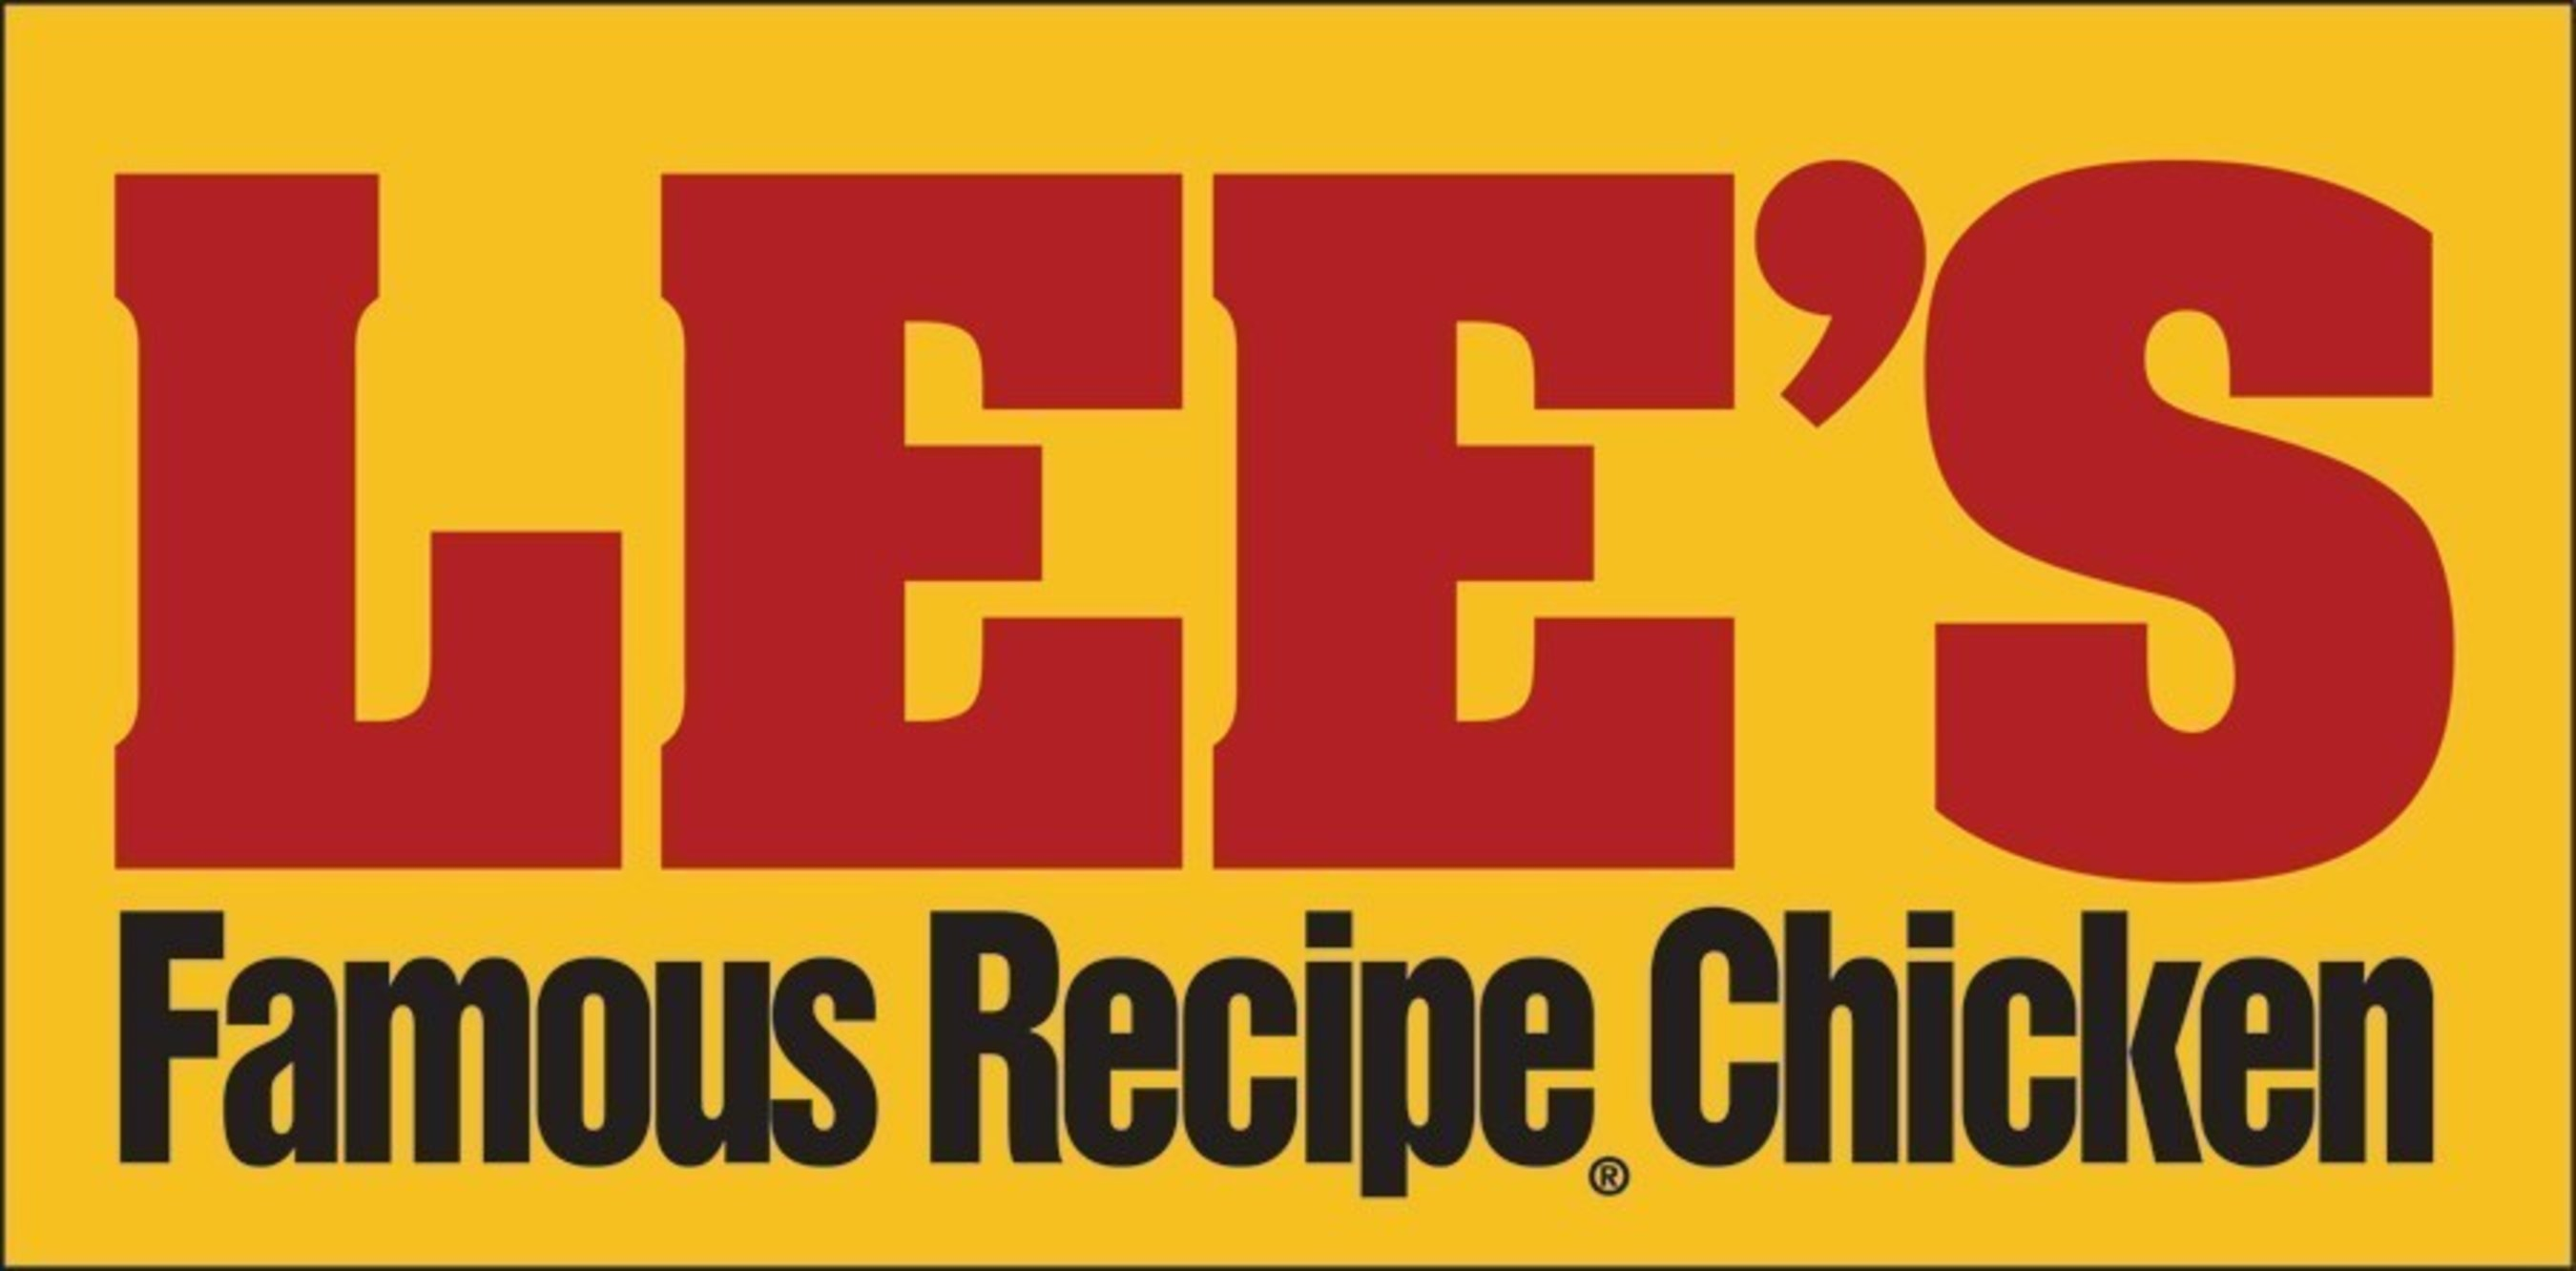 Lee's Famous Recipe(R) Chicken is a casual dining franchise founded in Lima, Ohio in 1966 specializing in fresh, never frozen chicken. There are 135 Lee's Famous Recipe Chicken locations in 12 states across America. To learn more, please visit LeesFamousRecipe.com.